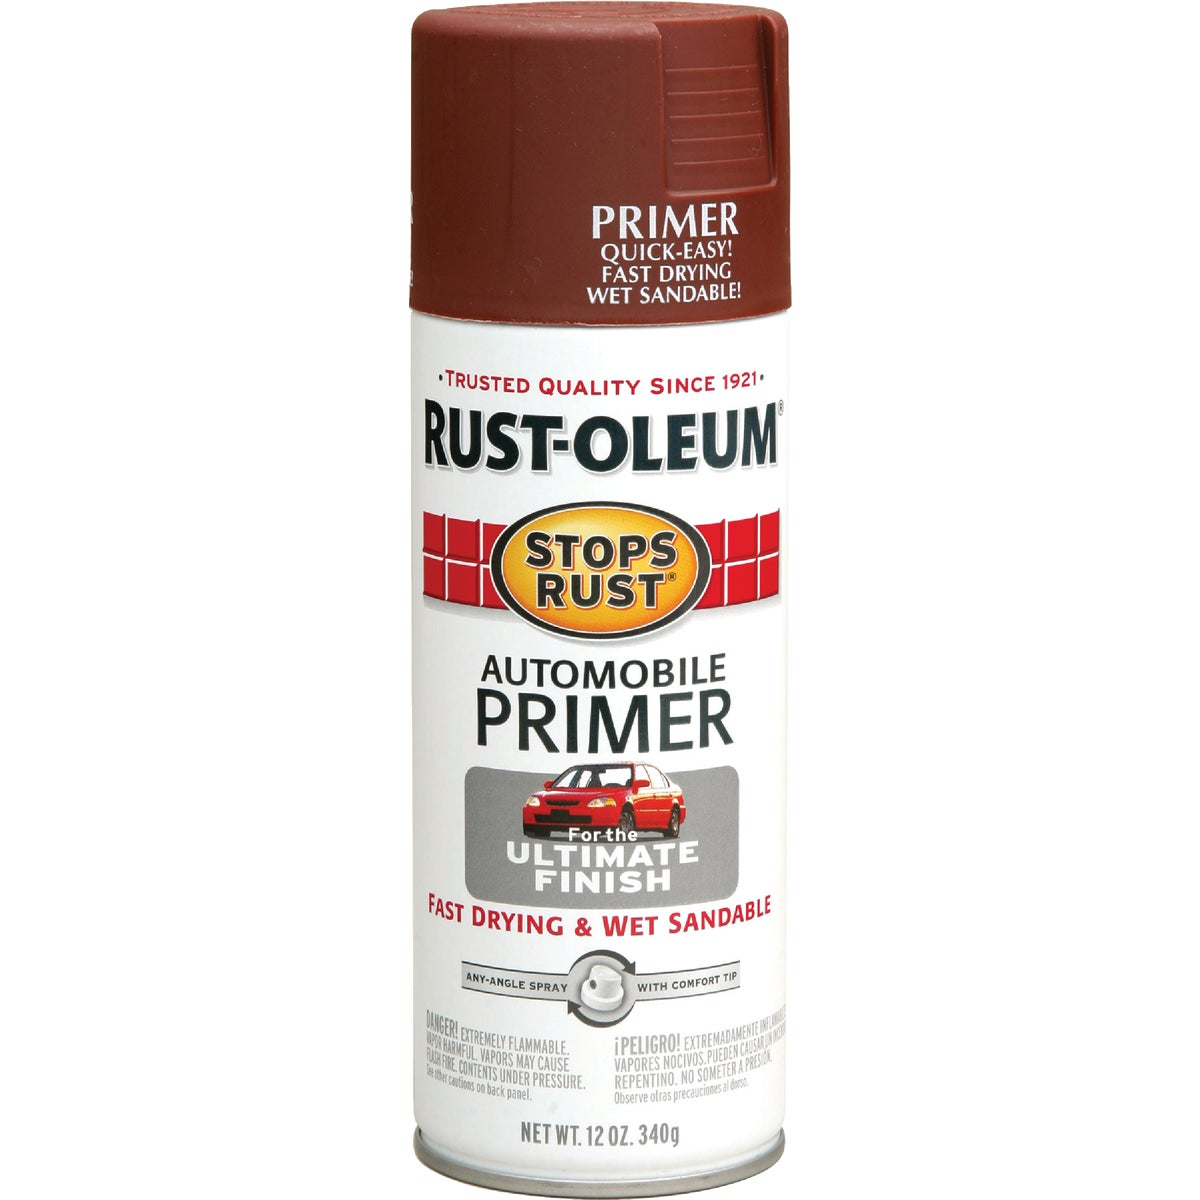 RED AUTO SPRAY PRIMER - 2067-830 by Rustoleum